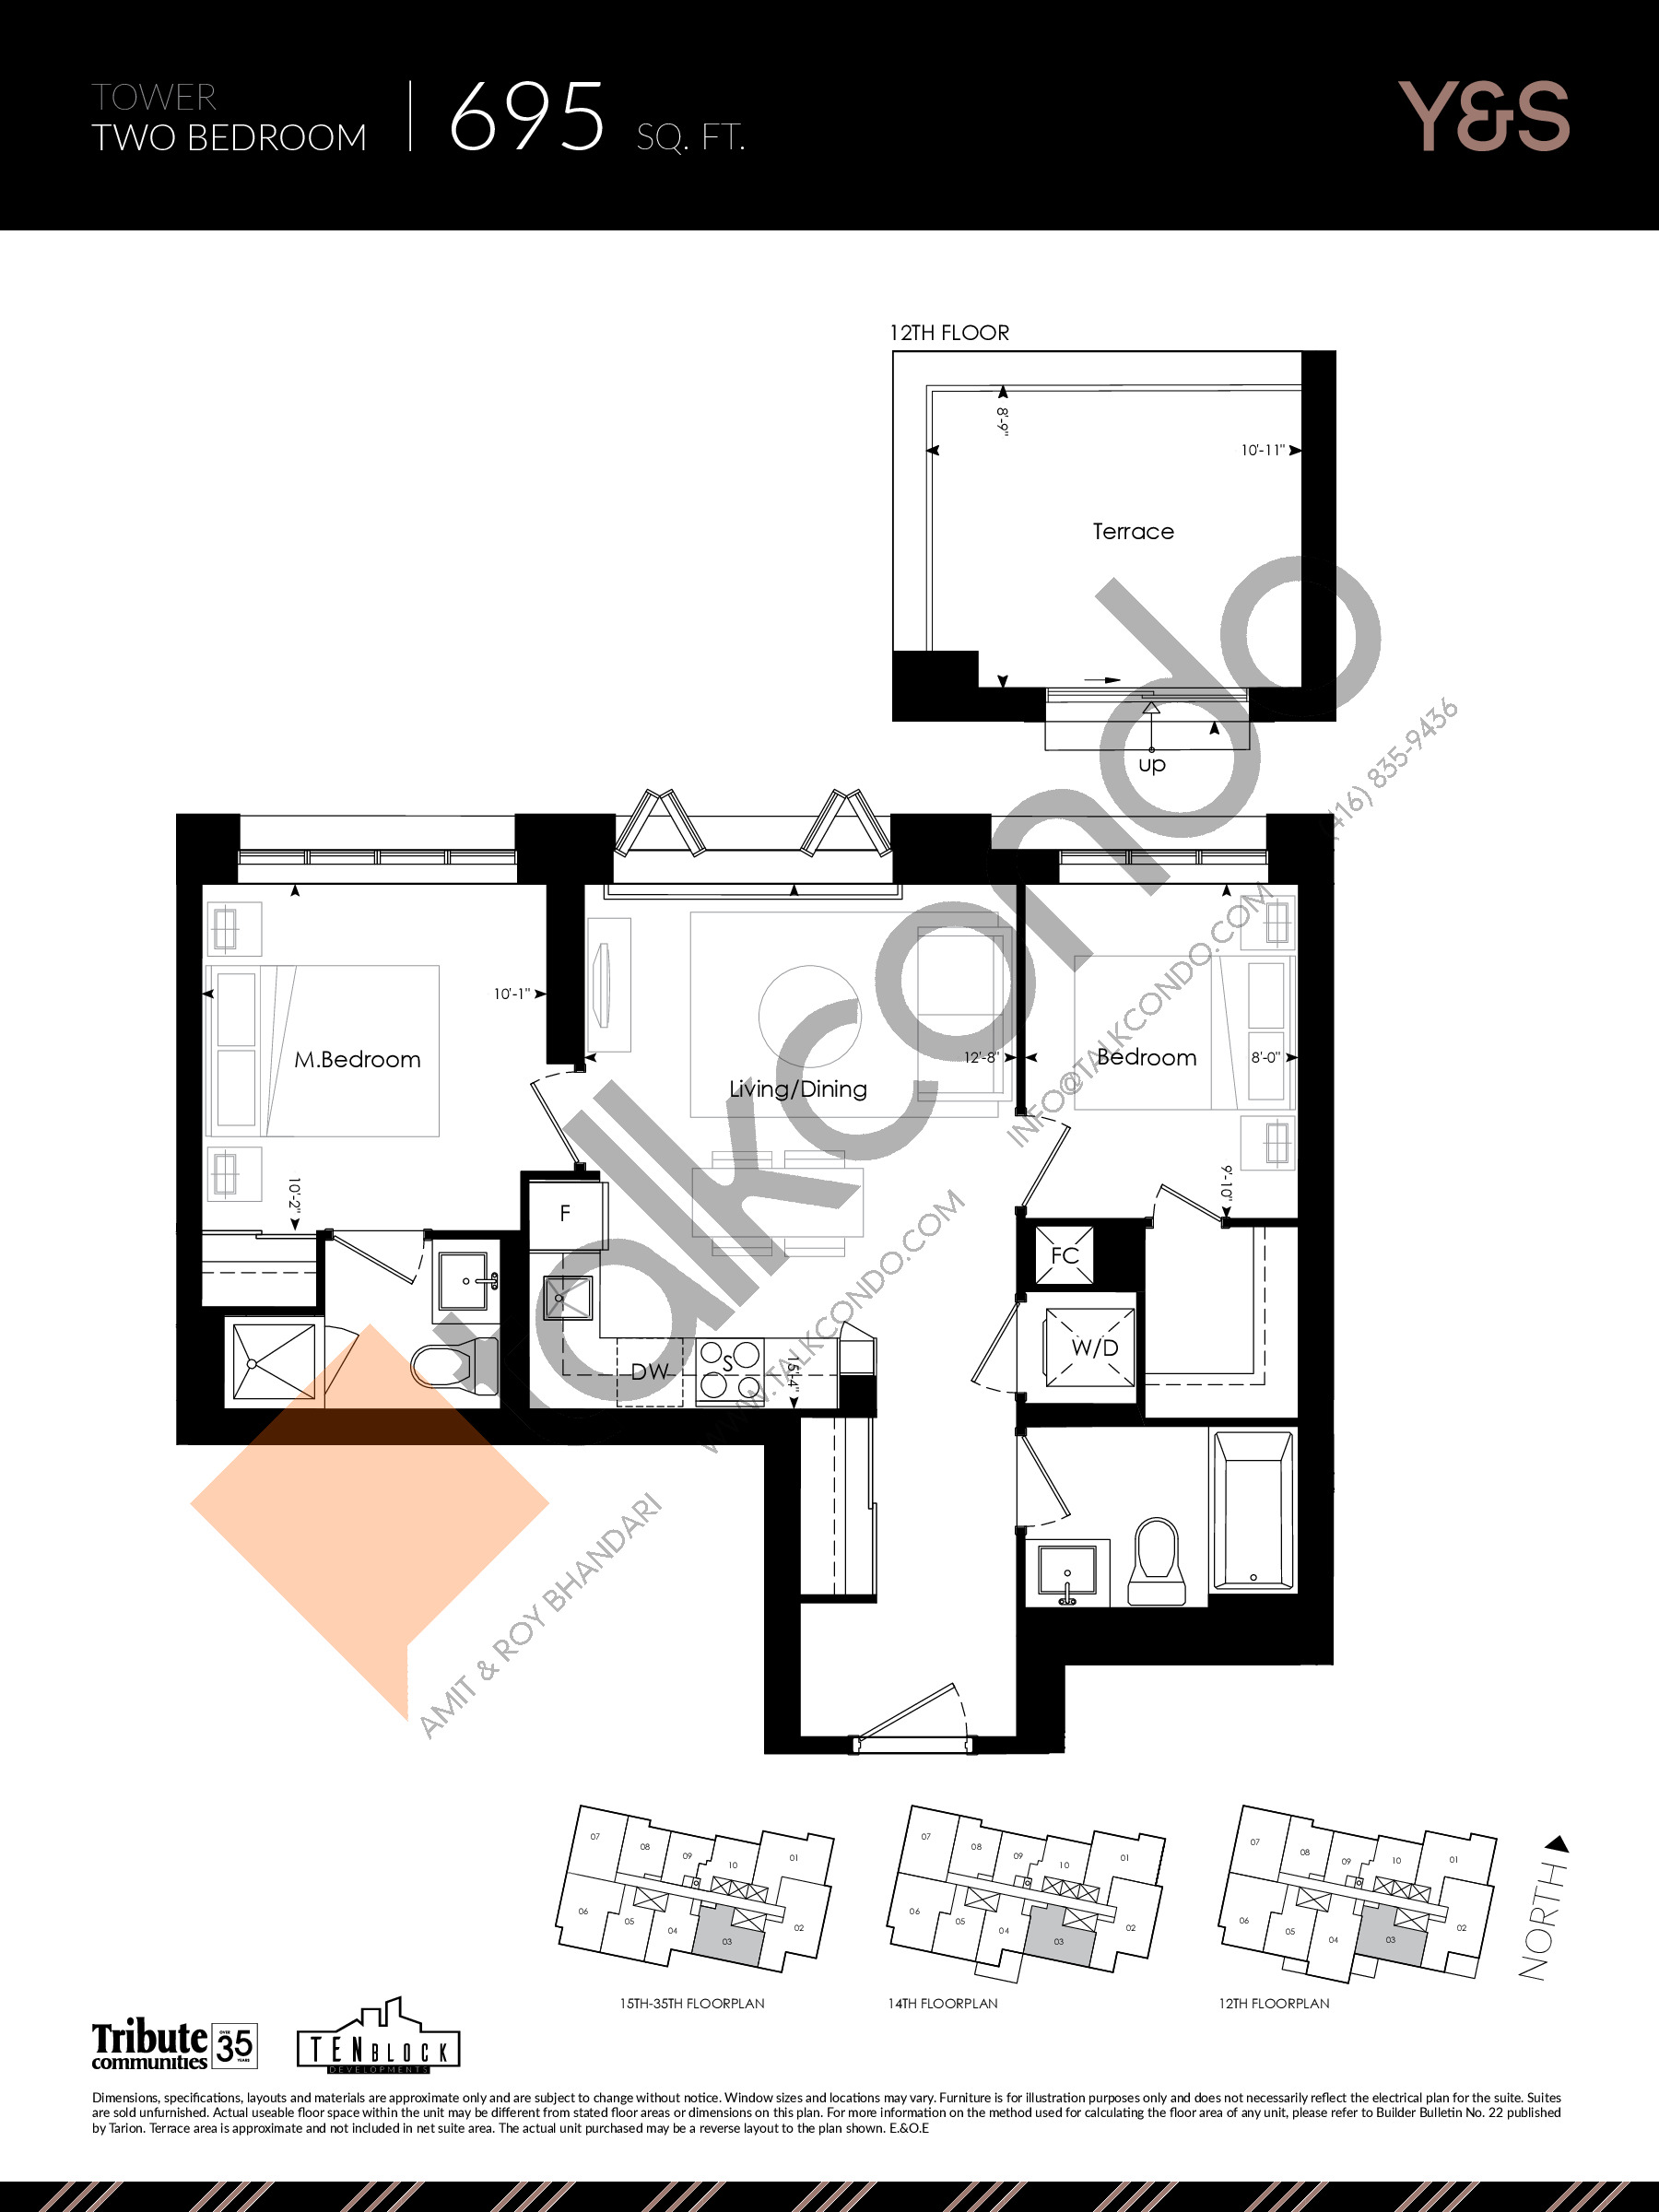 695 sq. ft. Floor Plan at Y&S Condos - 695 sq.ft